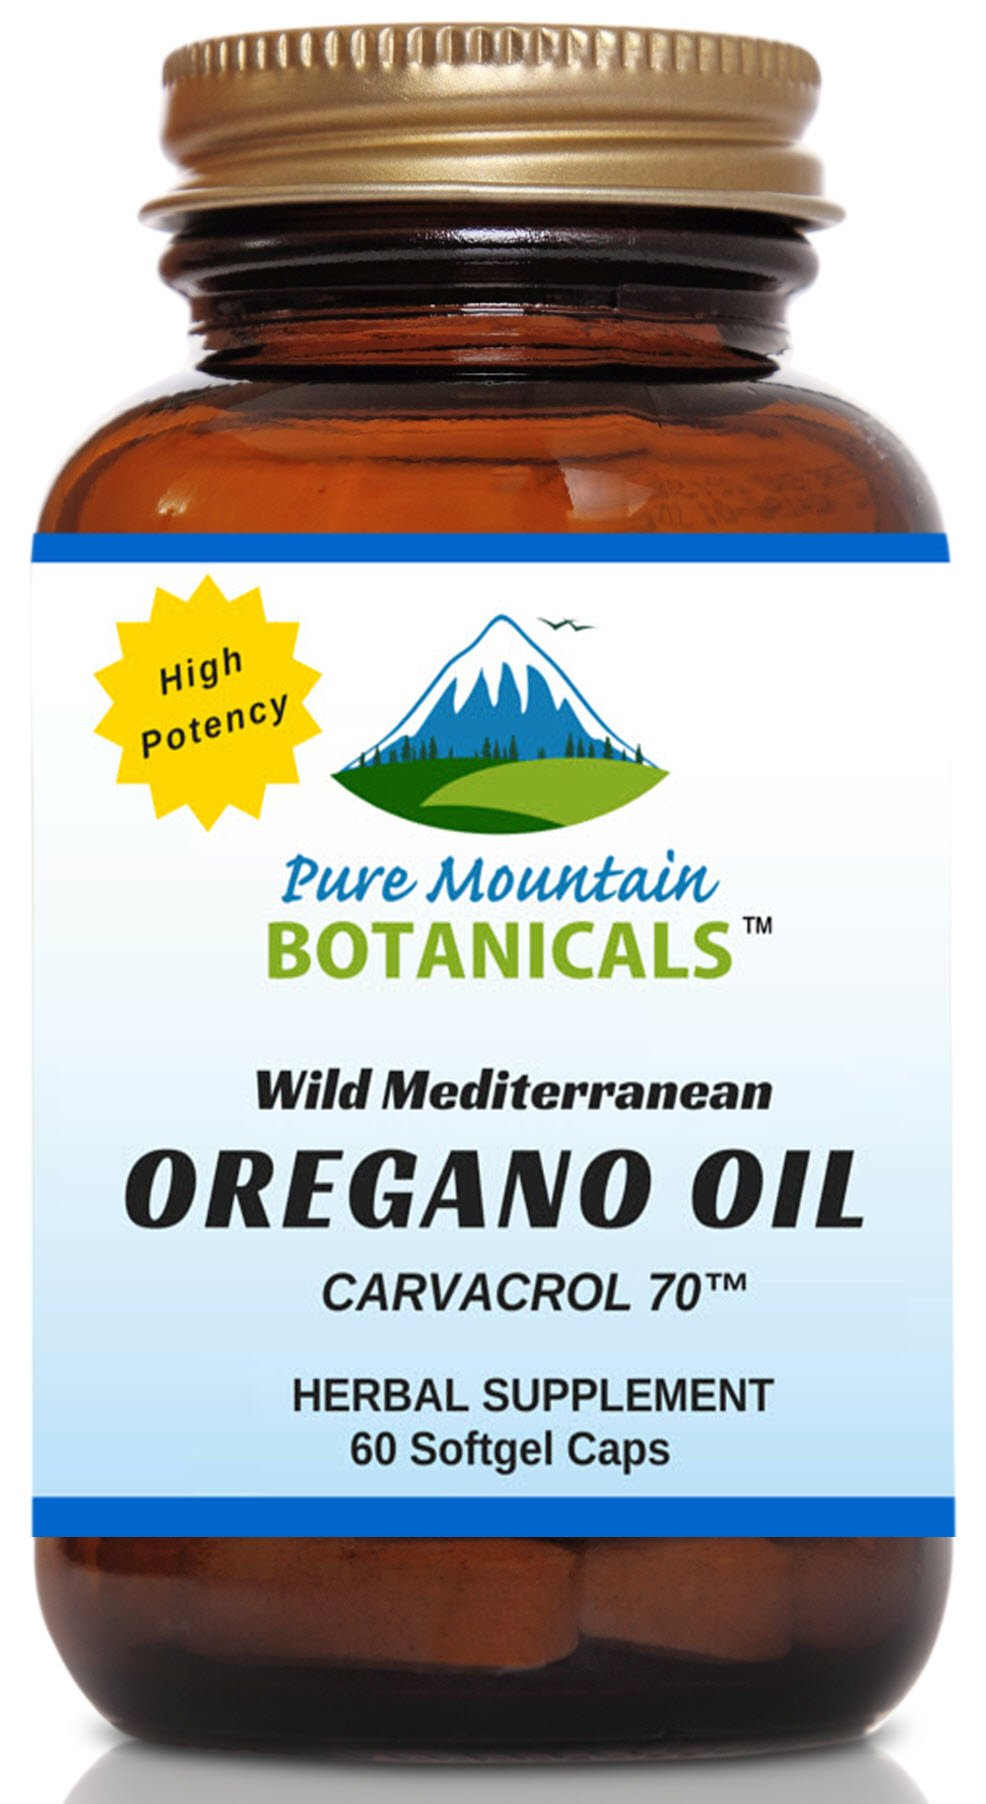 High Potency Wild Oregano Oil - 60 Vegetarian Capsules – Now with 510mg Mediterranean Oil of Oregano (70% Carvacrol) by Pure Mountain Botanicals